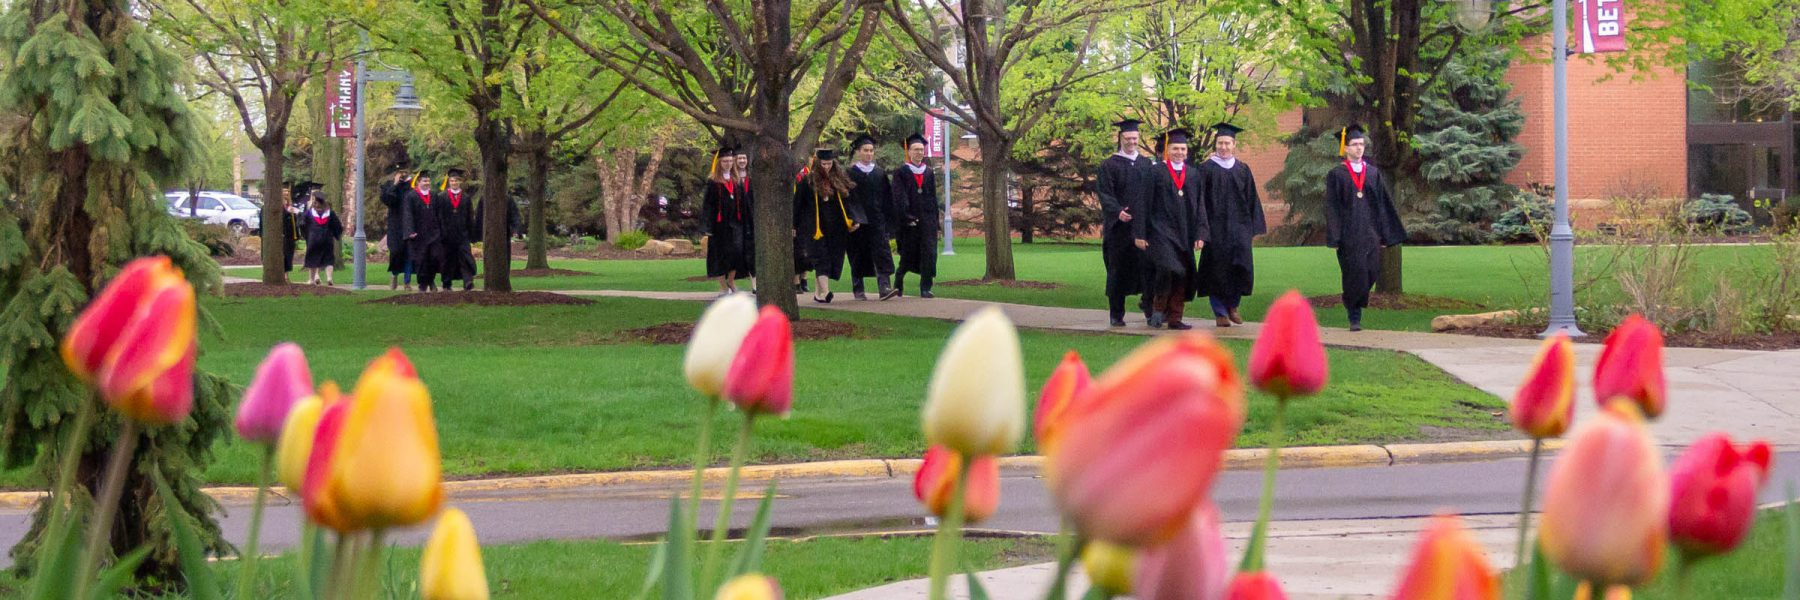 Graduates walking across campus before commencement